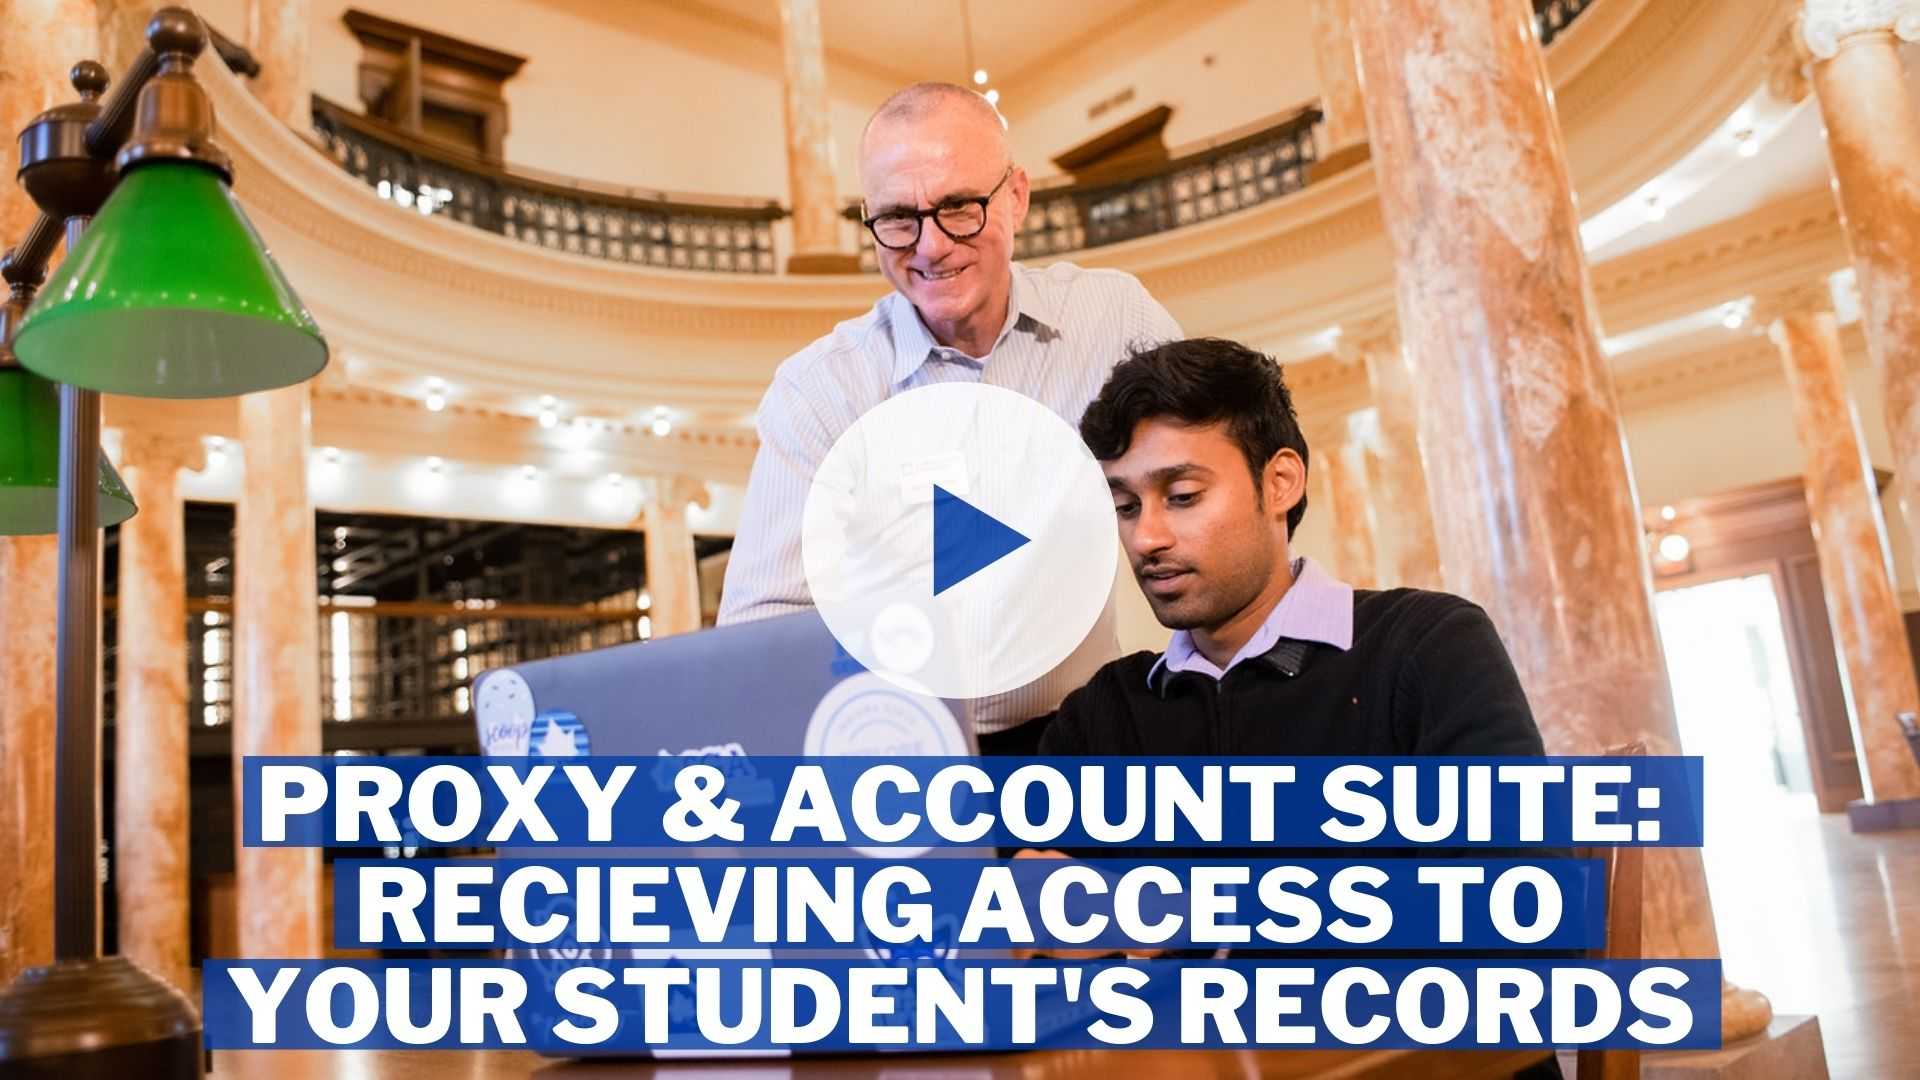 Proxy & Account Suite - Receiving Access to Your Student's Records